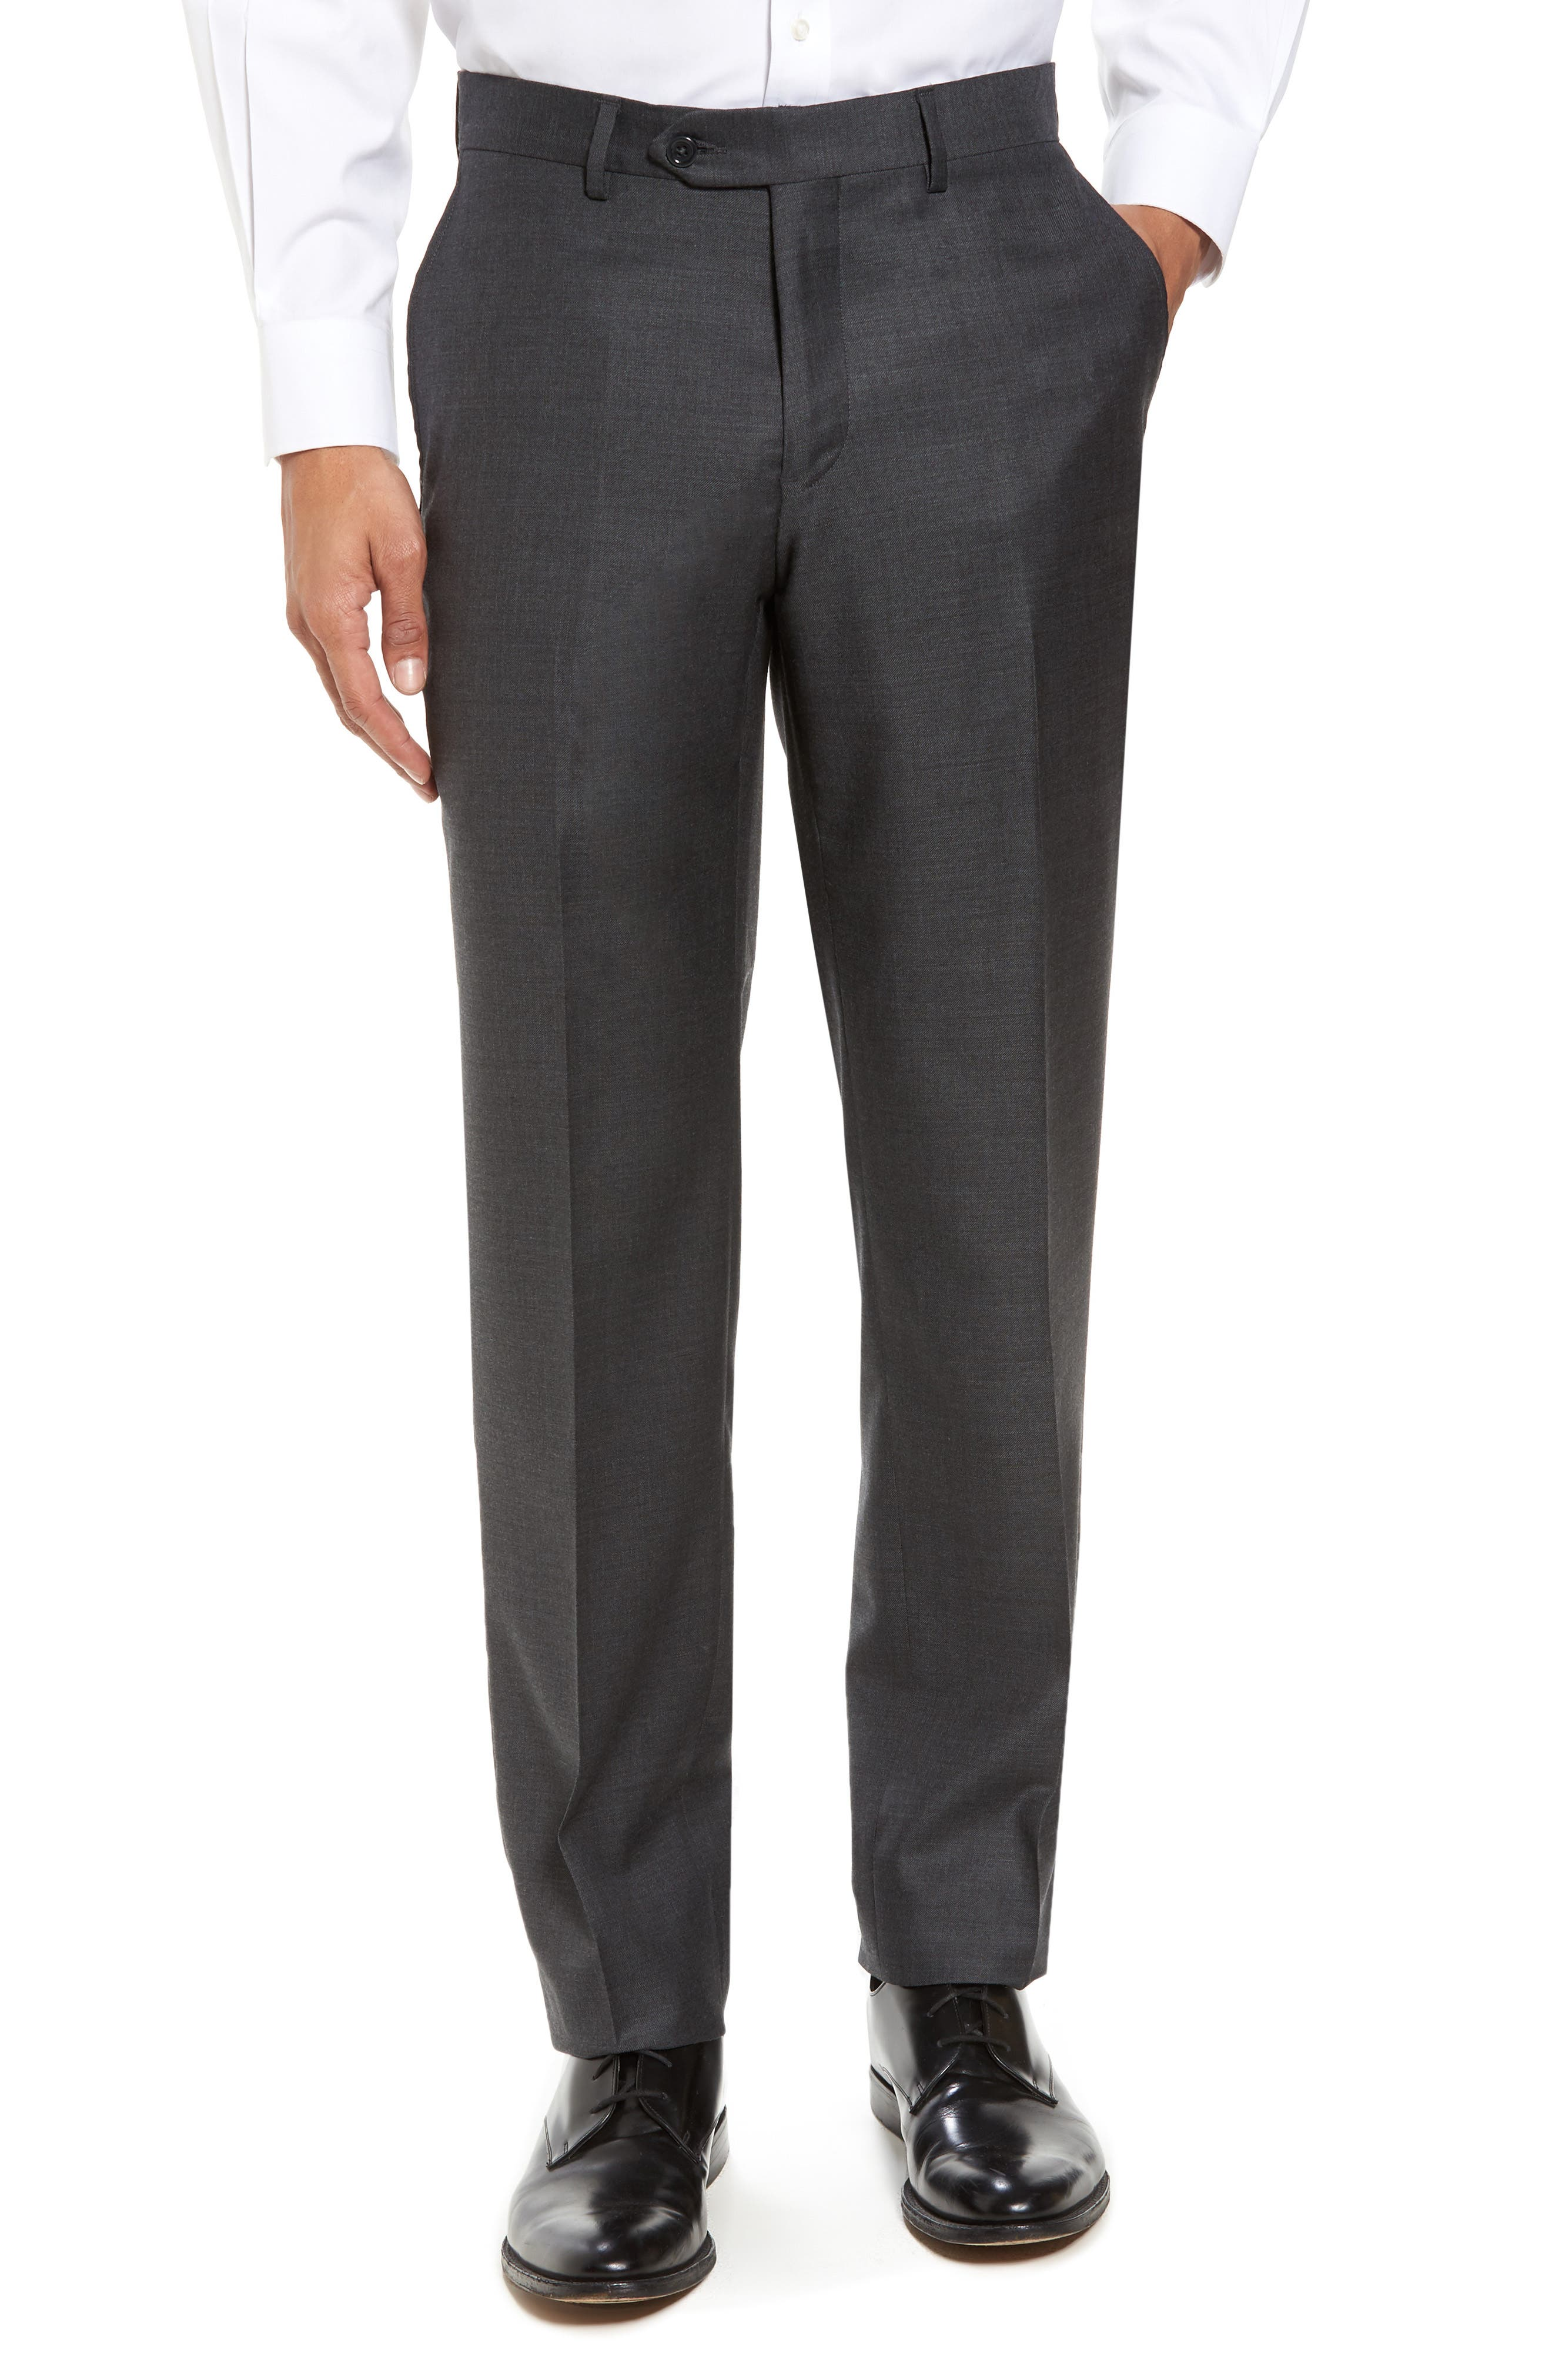 NORDSTROM MEN'S SHOP Flat Front Sharkskin Wool Trousers, Main, color, 025